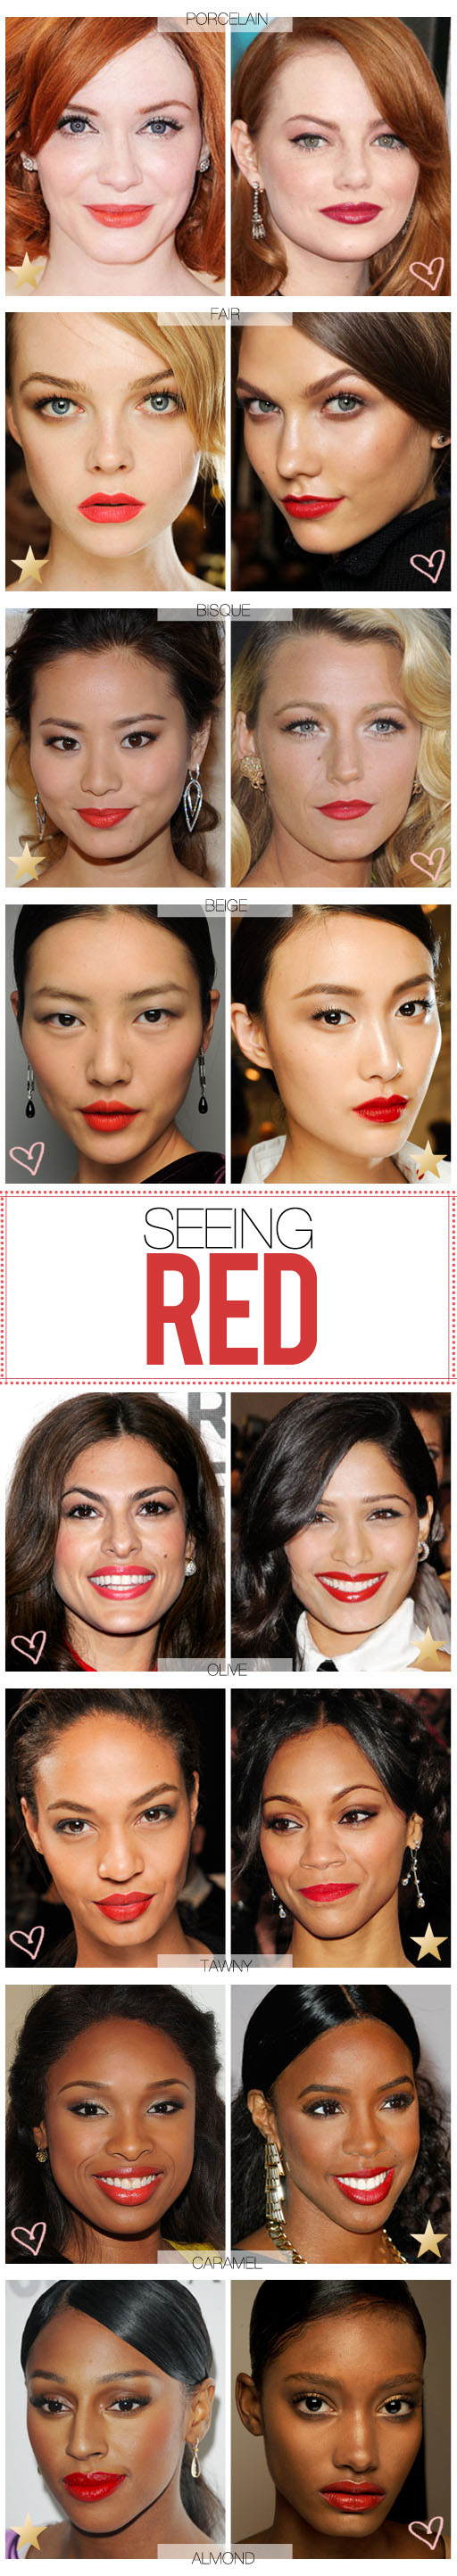 Best Red Lip Shades For Your Skin Tone